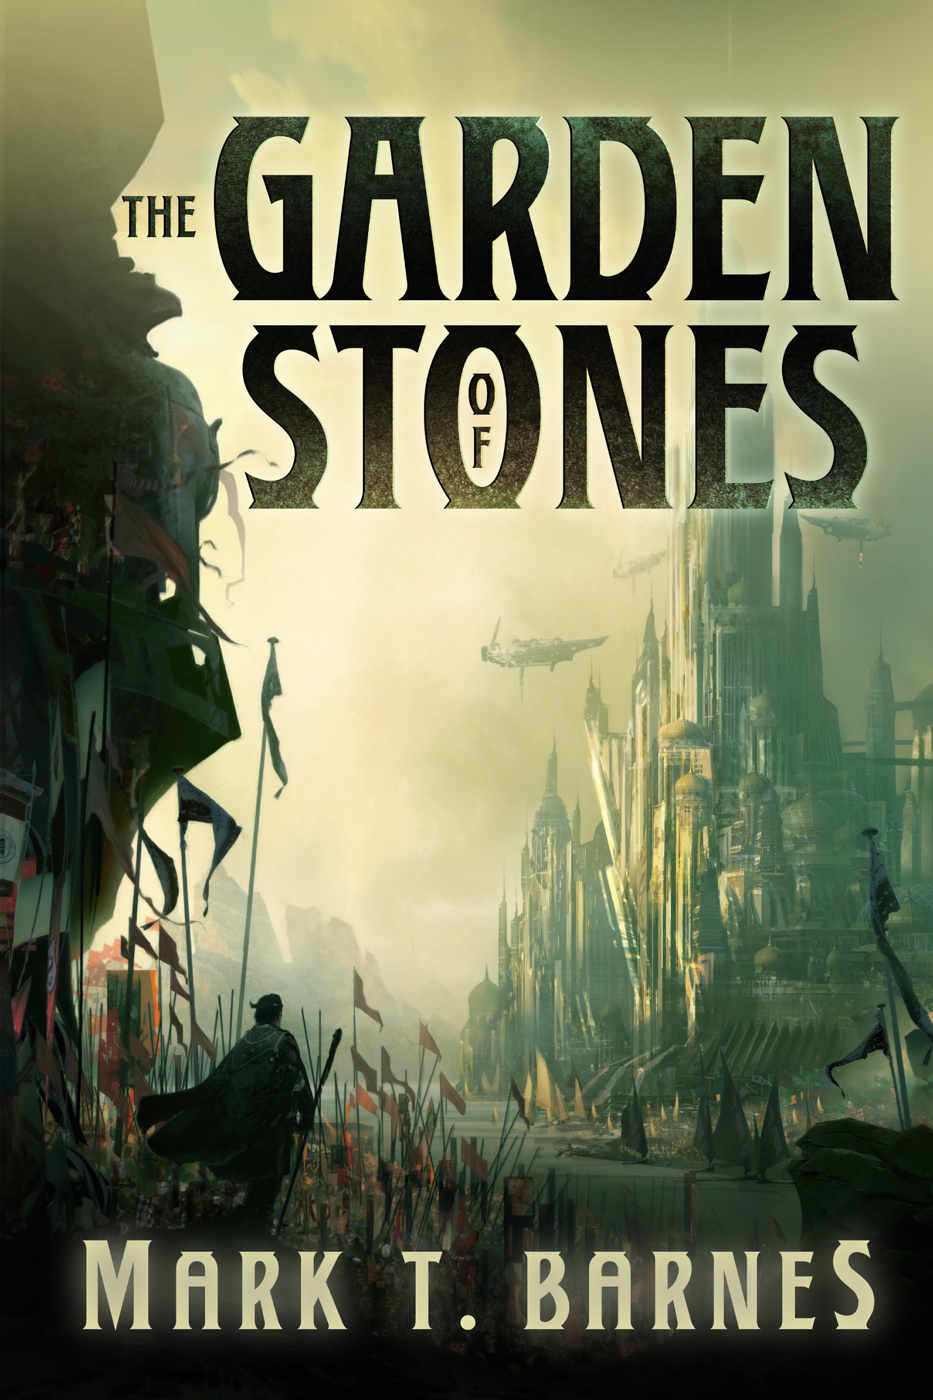 The Garden of Stones (Echoes of Empire#1) by Mark T. Barnes